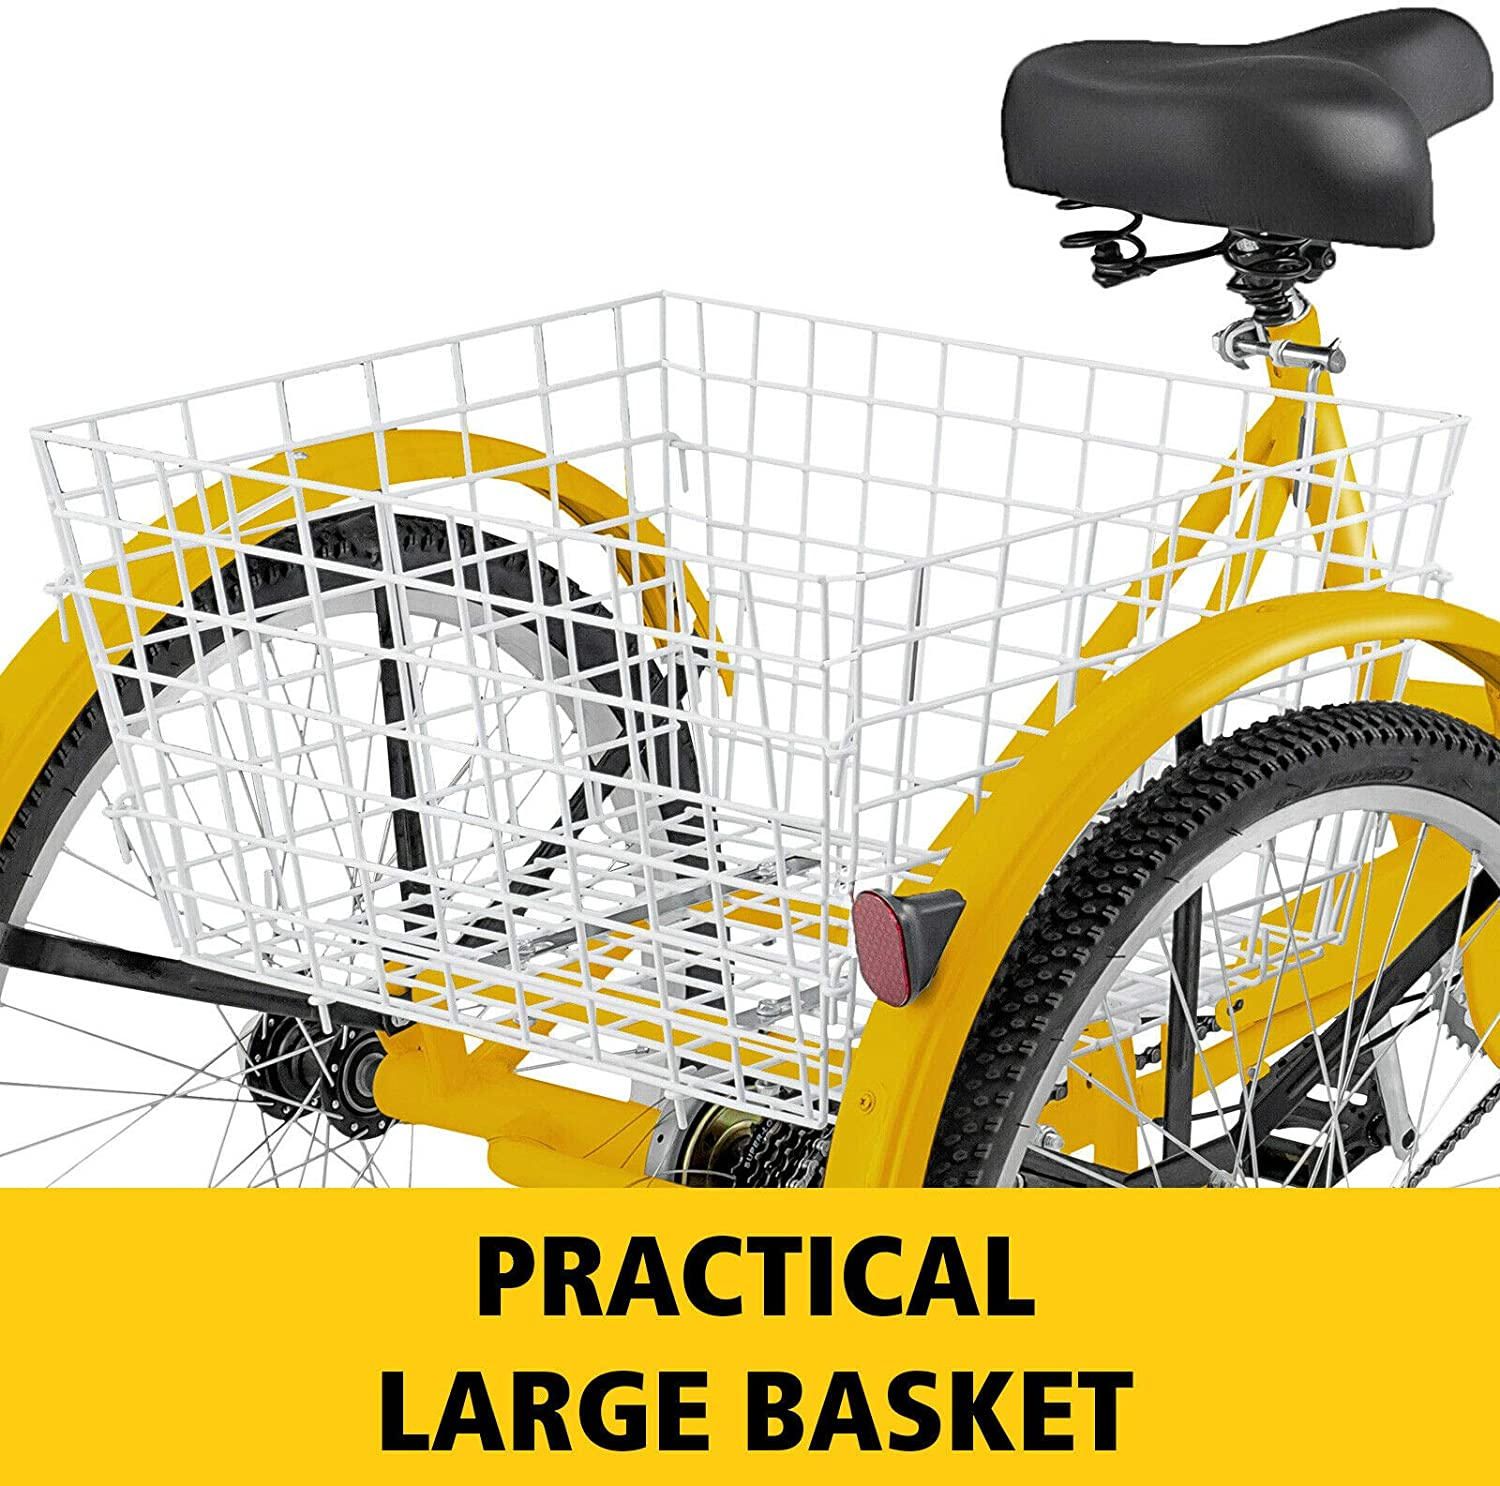 Super Safety Trike Cycling w//Extra Large Shopping Basket Lock Adjustable Black Col Mandycng 24 Inch Wheel Elder Tricycle Durable /& Reliable 3-Wheel 1 Speed Bicycle Adult Excercise Max Loads 330 Lbs